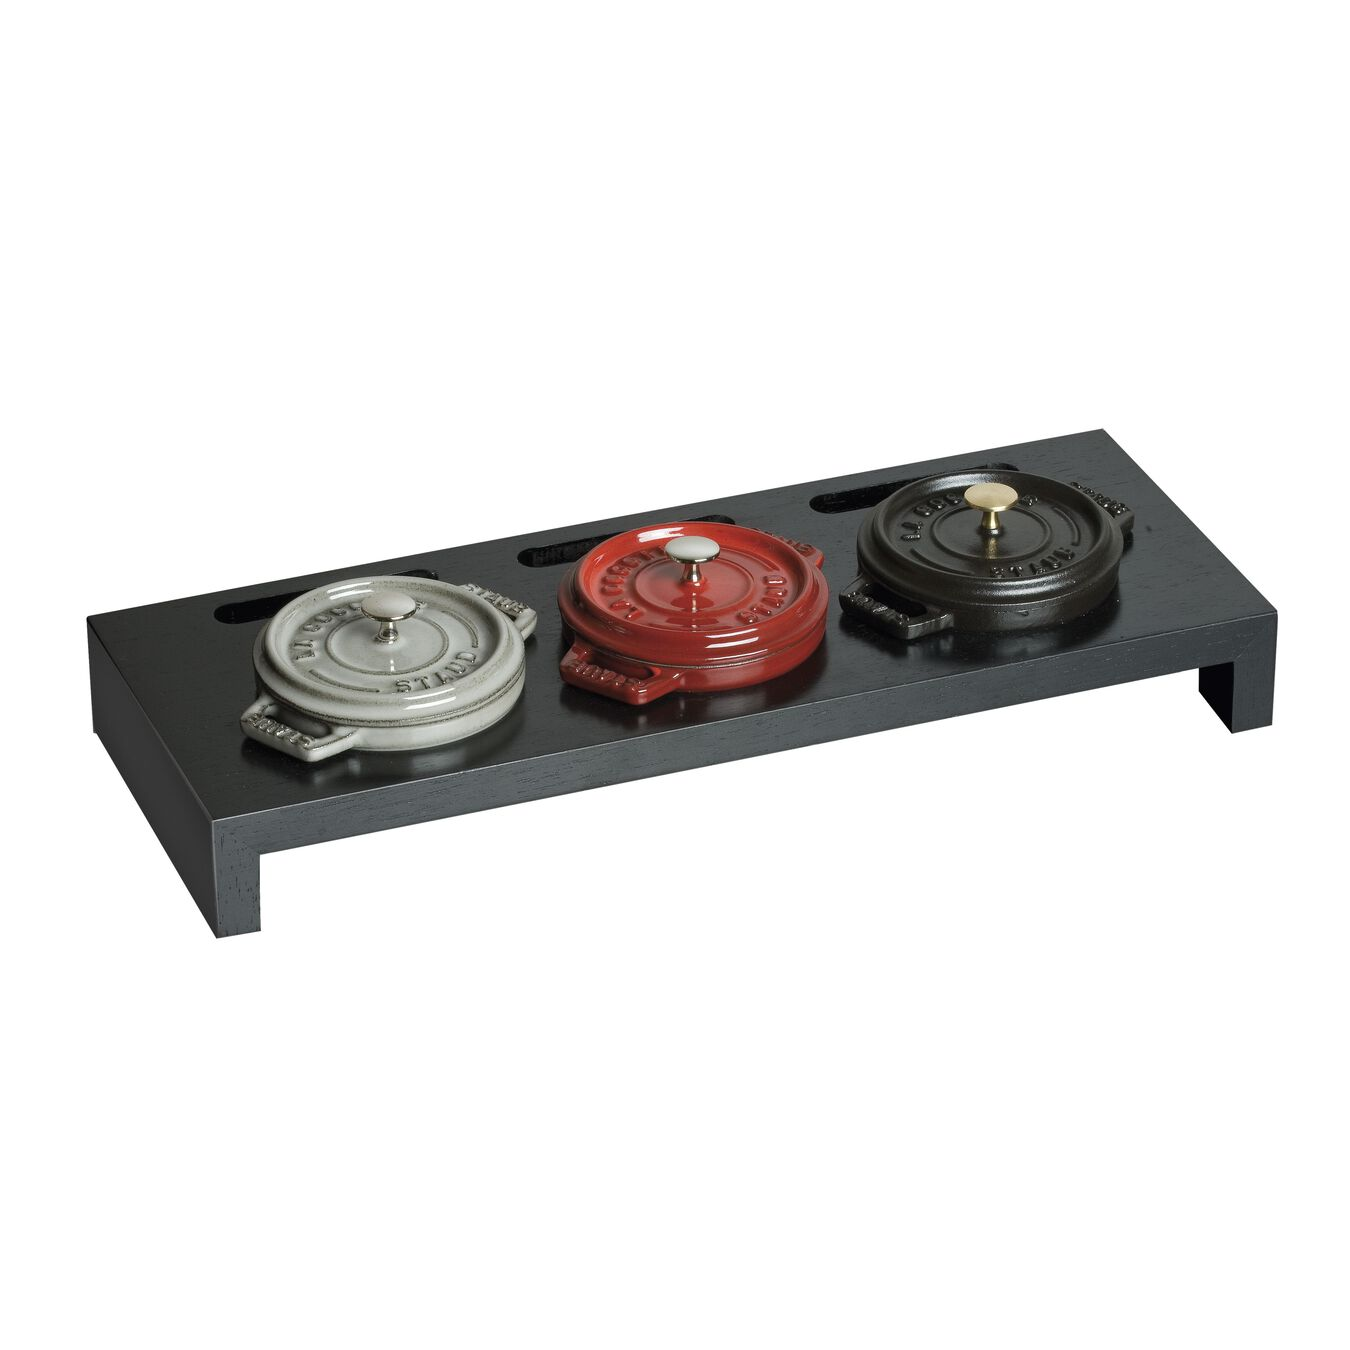 Wood Mini Cocotte Stand - Black,,large 2